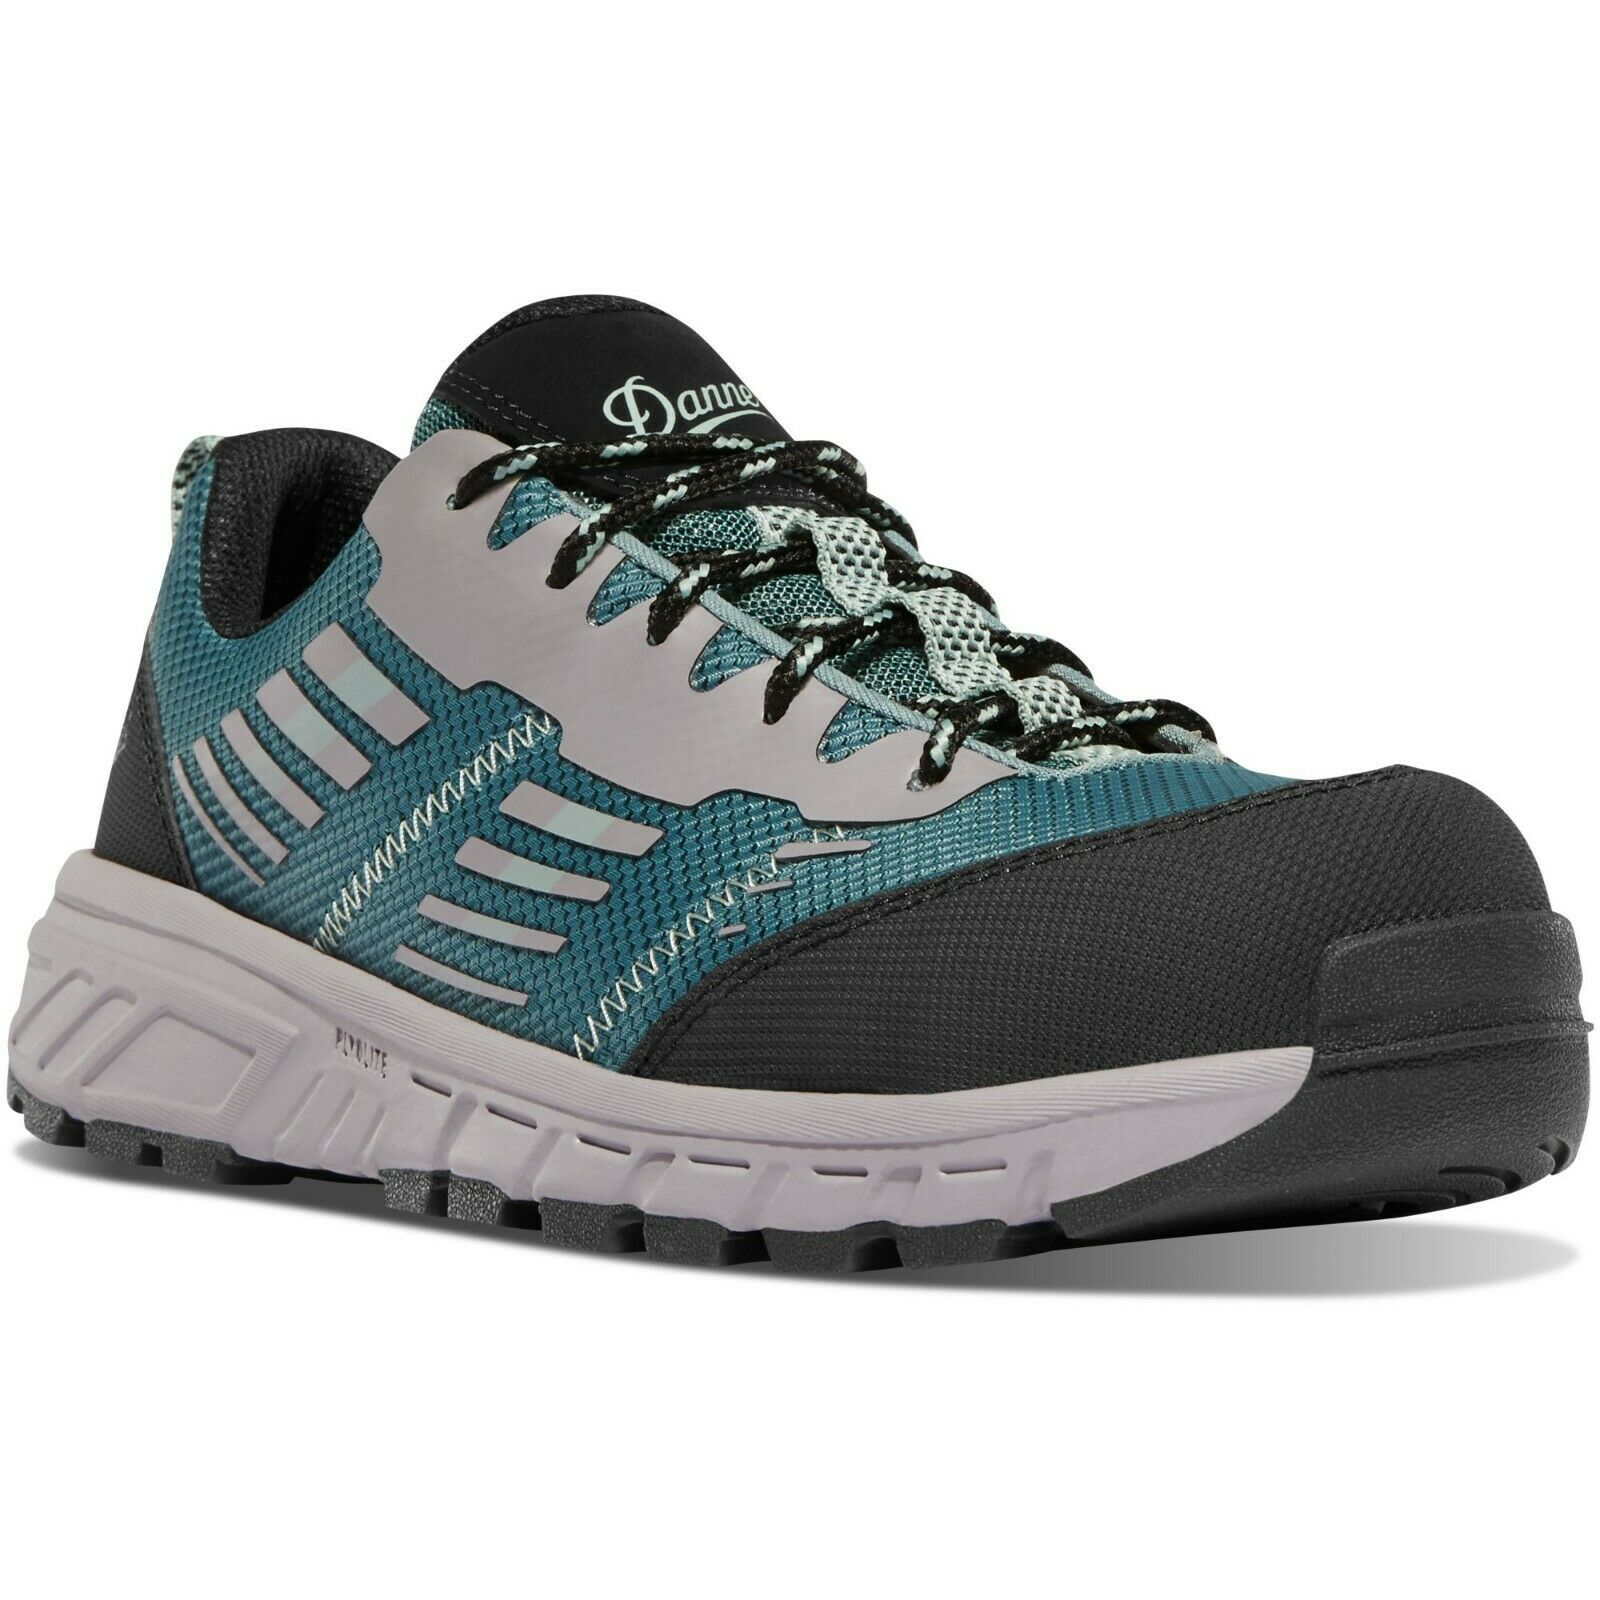 Danner 12373 Women's Run Time 3  Teal NMT Composite Toe Mesh Textile Work shoes